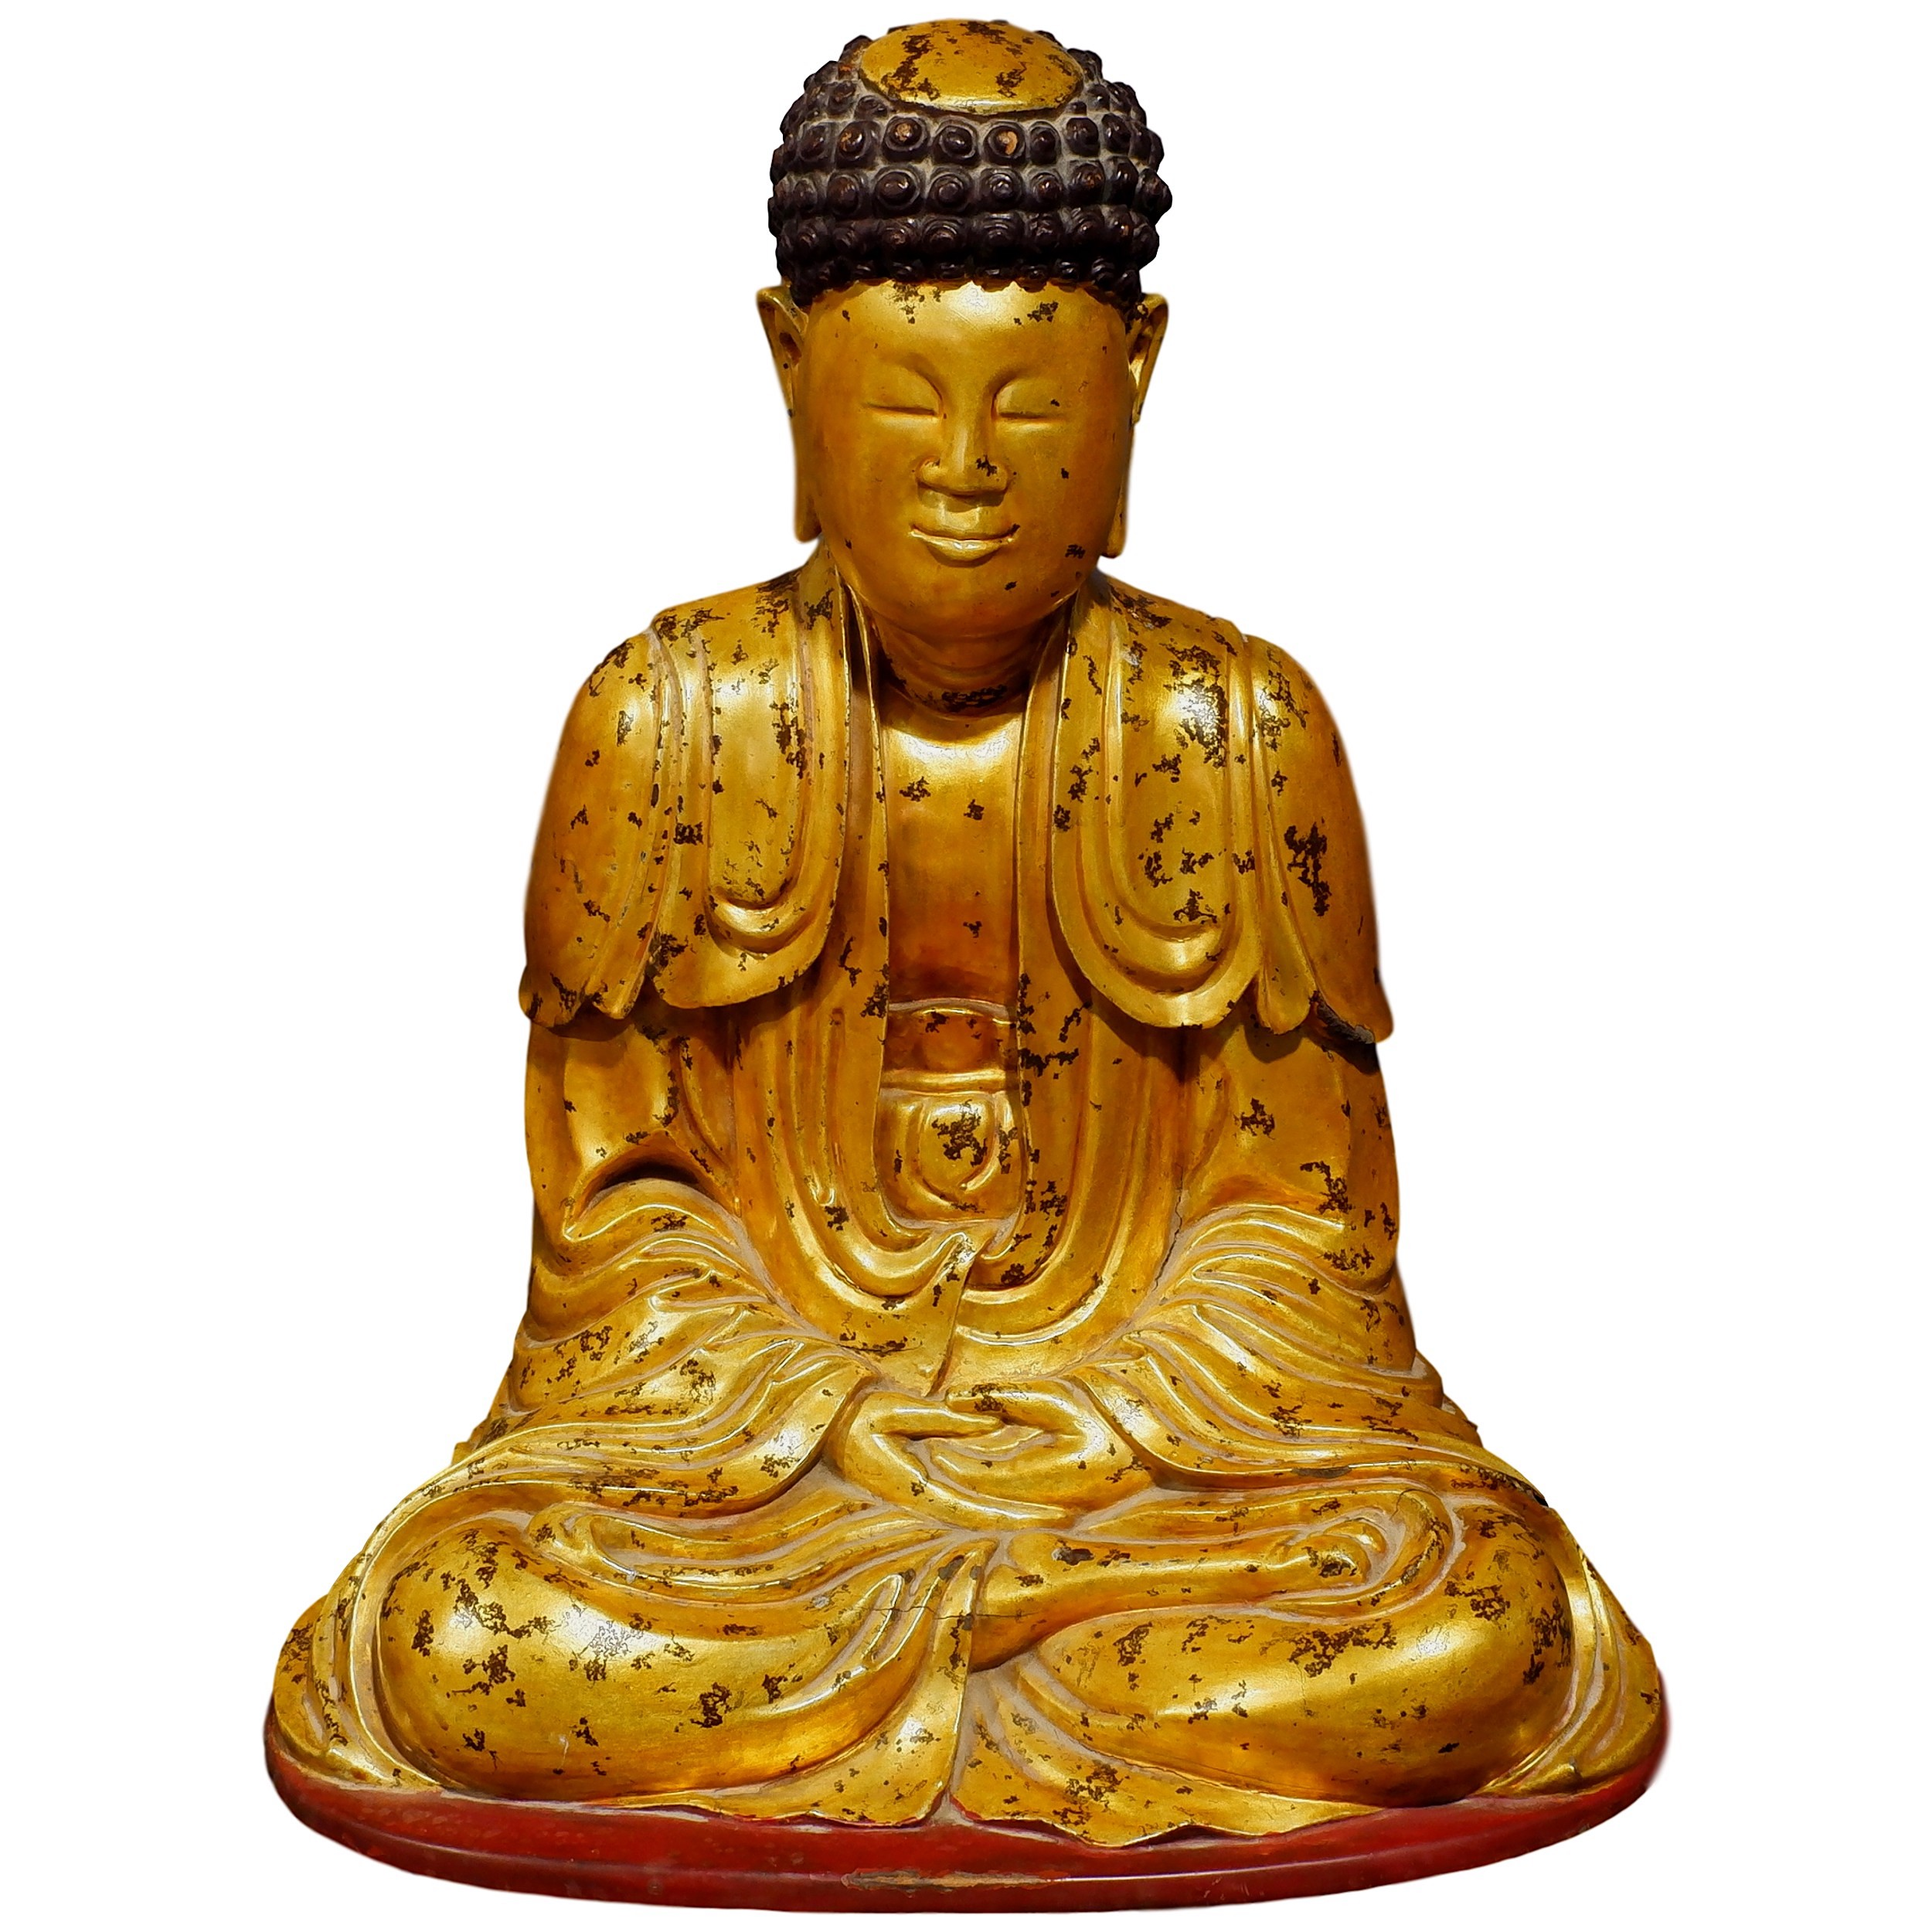 'Vietnamese Gold and Red Lacquered Carved Wood Figure of Buddha Shakyamuni in Dhyan Mudra'